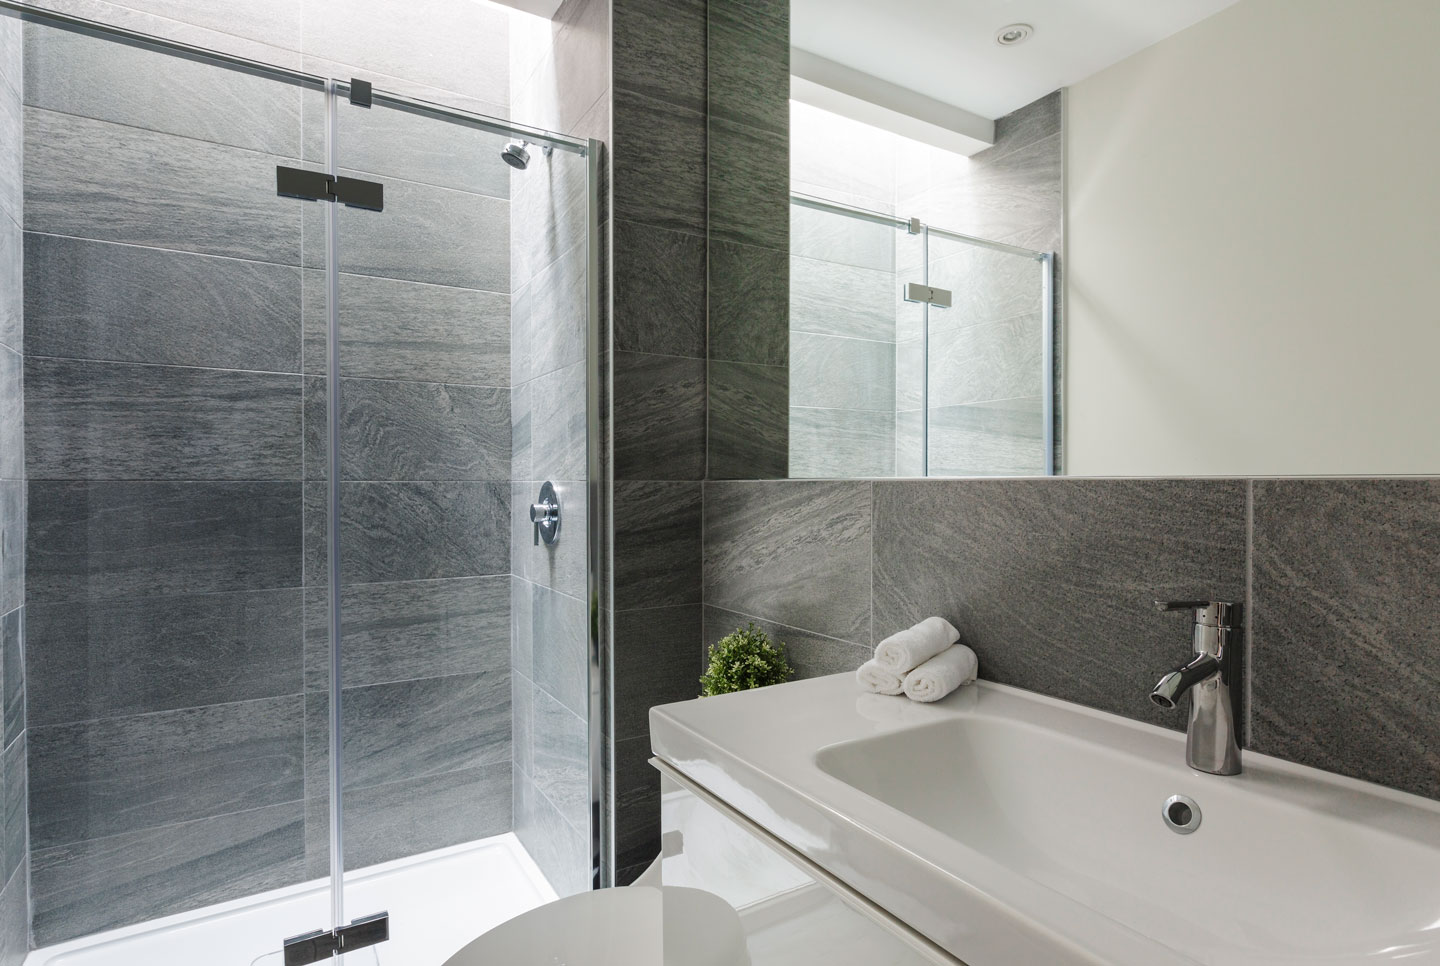 Fabfour: first bathroom with a walk-in shower